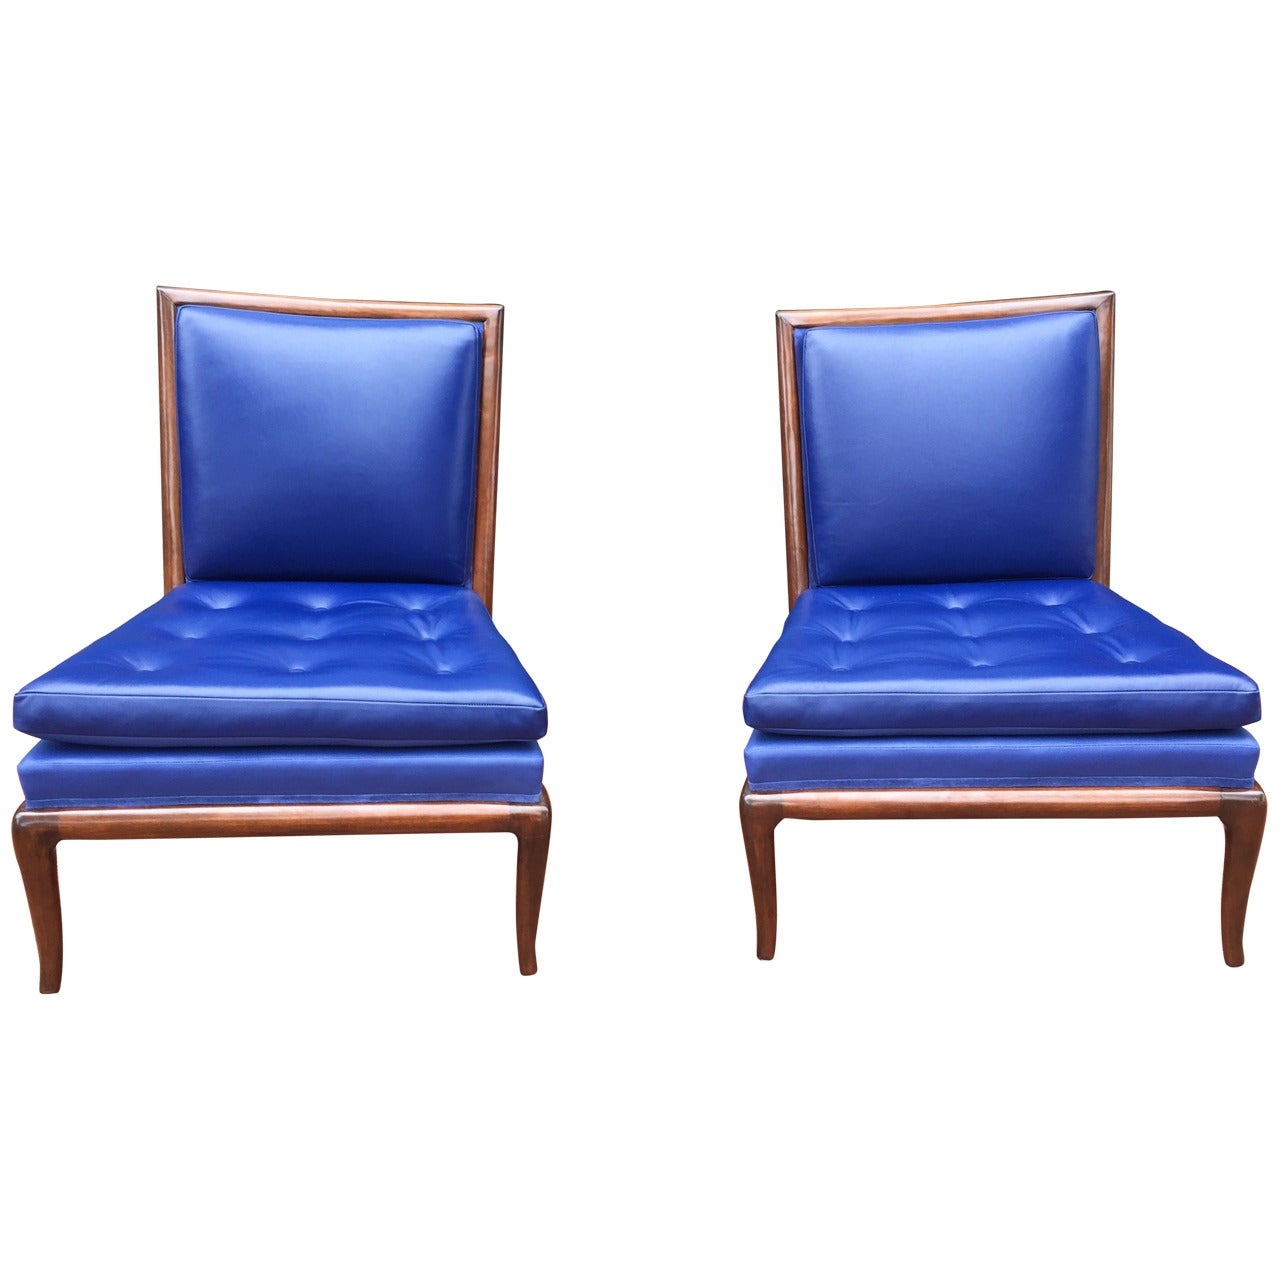 T.H. Robsjohn-Gibbings Slipper Chairs, Pair